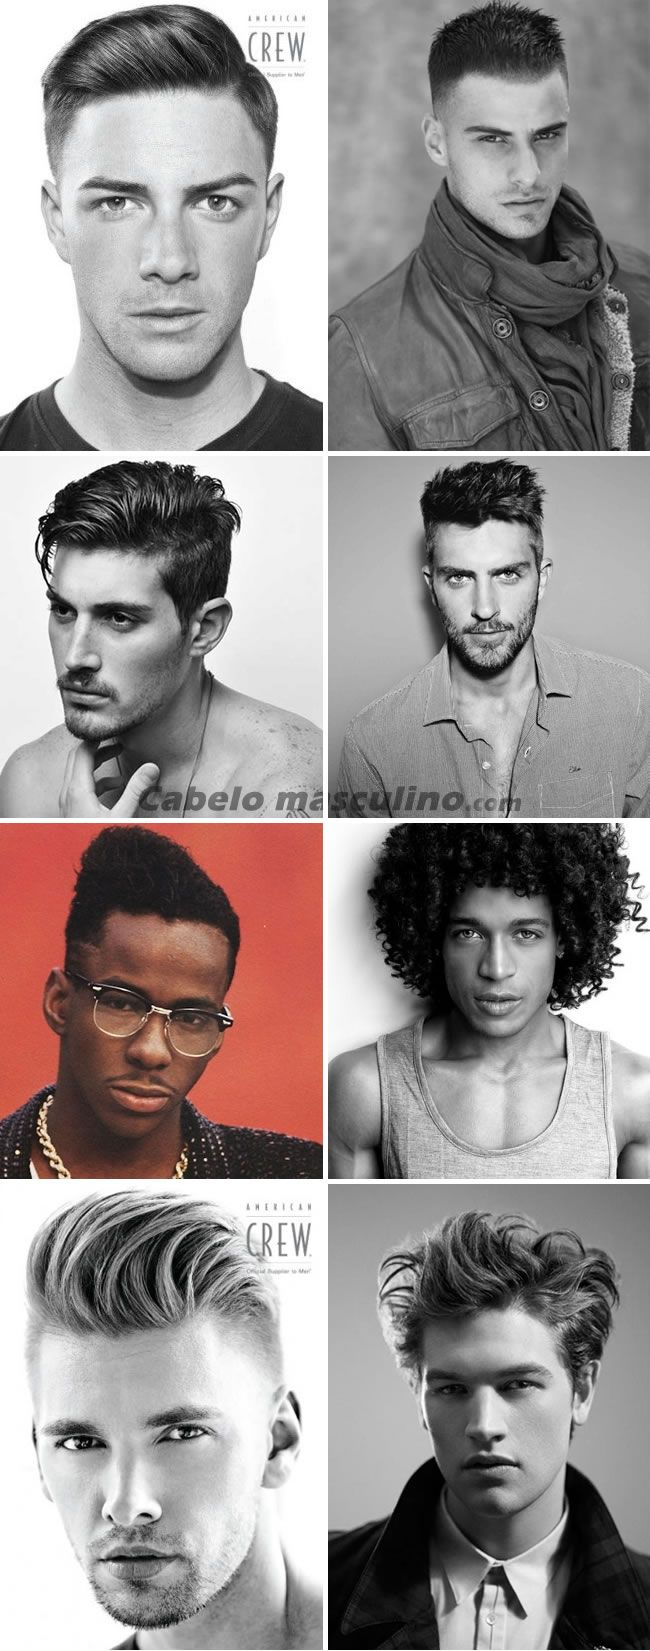 List of Pinterest rosto oval cabelo masculino images   rosto oval ... 2a8fe4c7f7